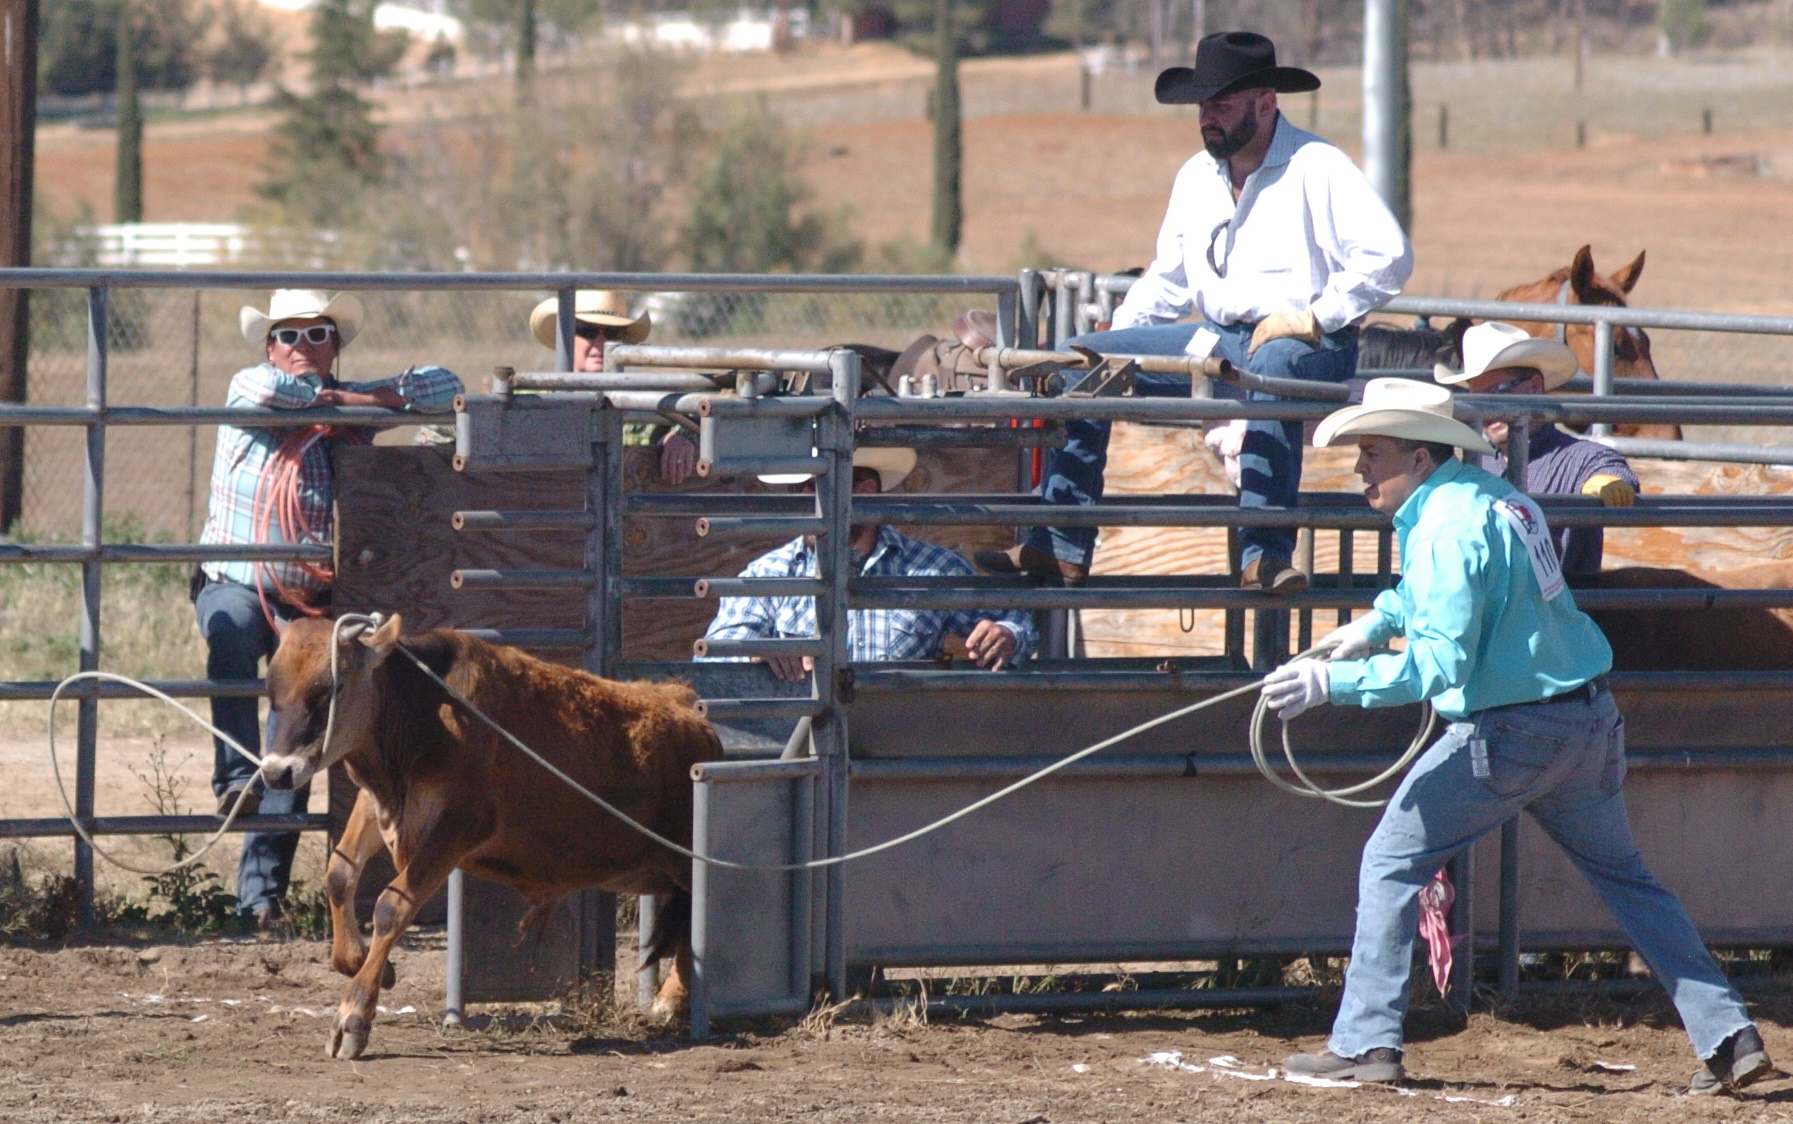 Johnny Sais from TGRA in 2014 Hot Rodeo